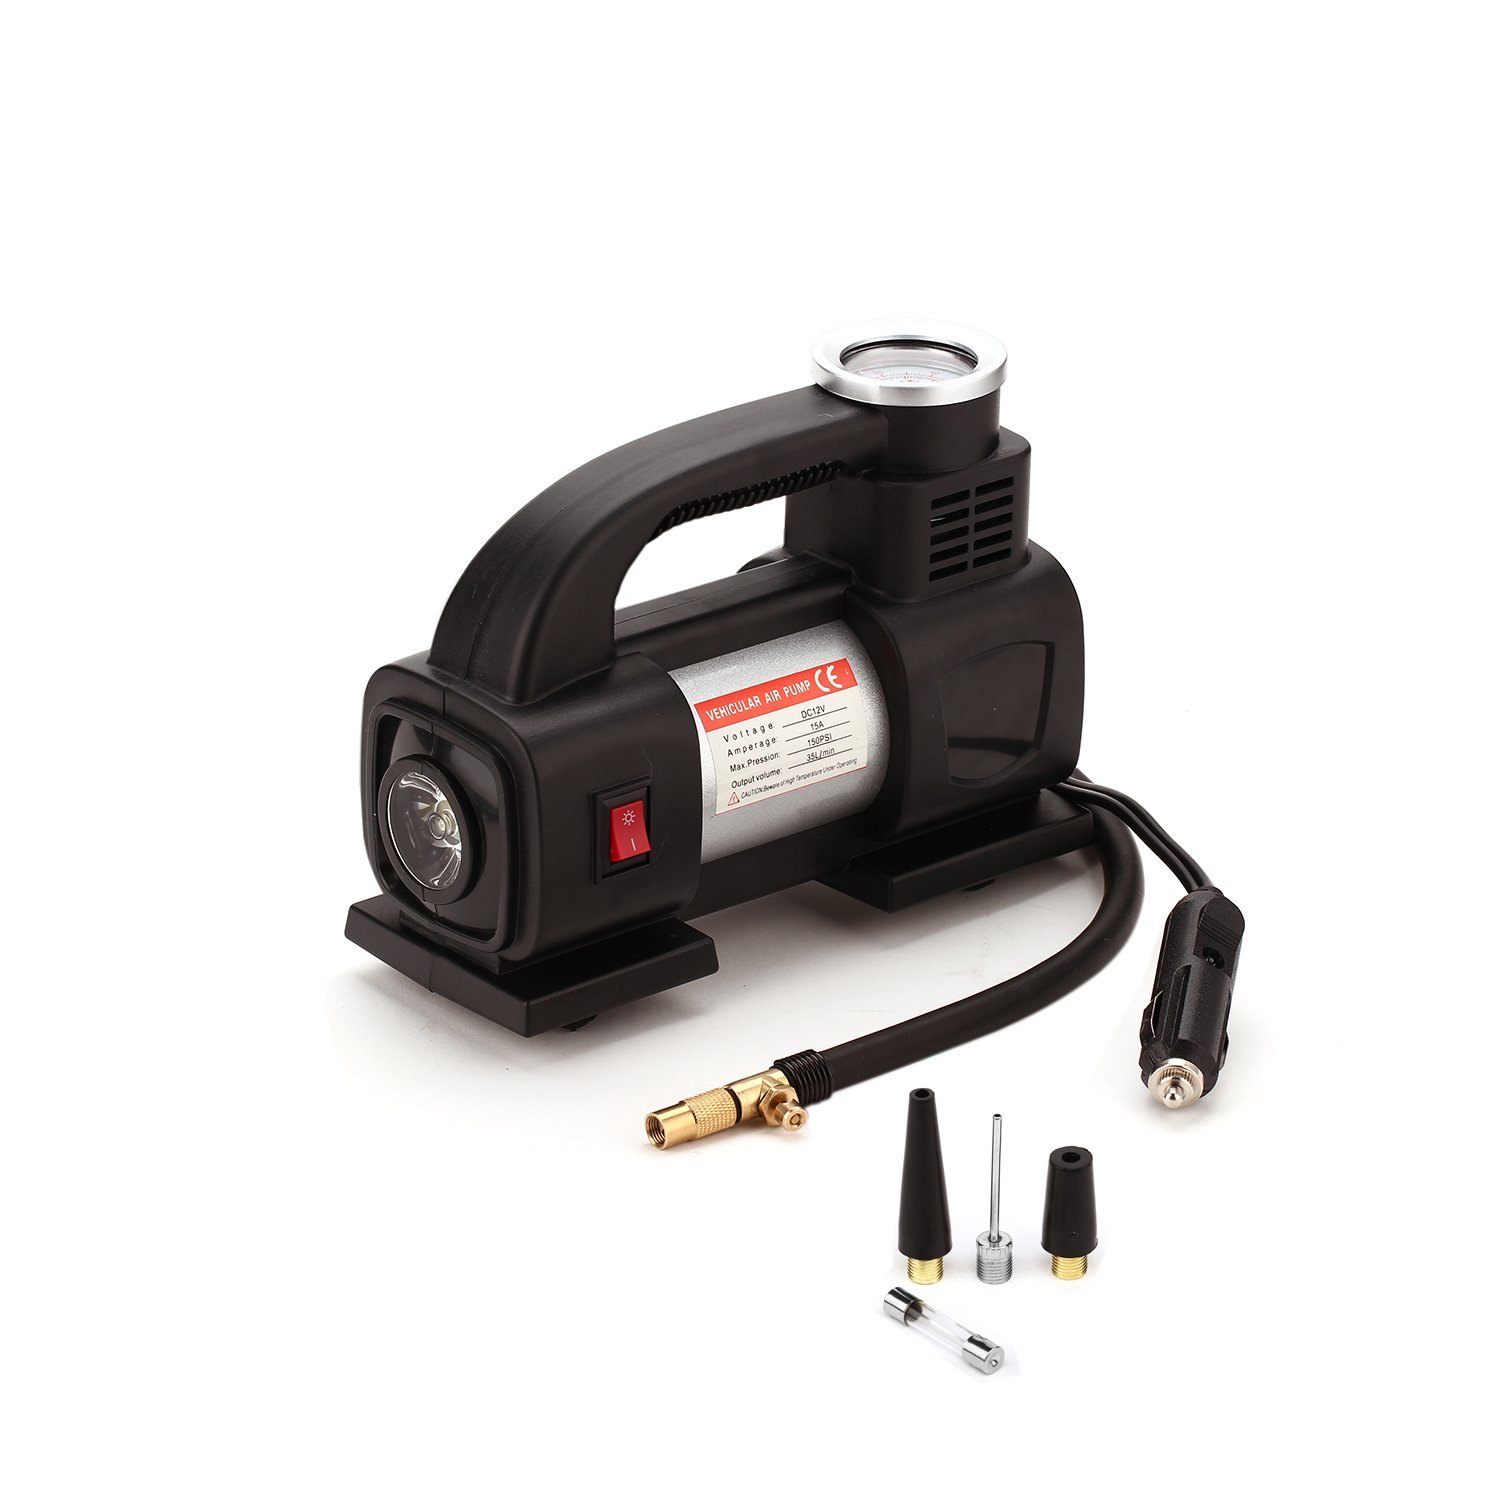 Portable Auto Air Compressor Pump Tire Inflator with Gauge by 100 PSI with Carry Bag Shiningeyes